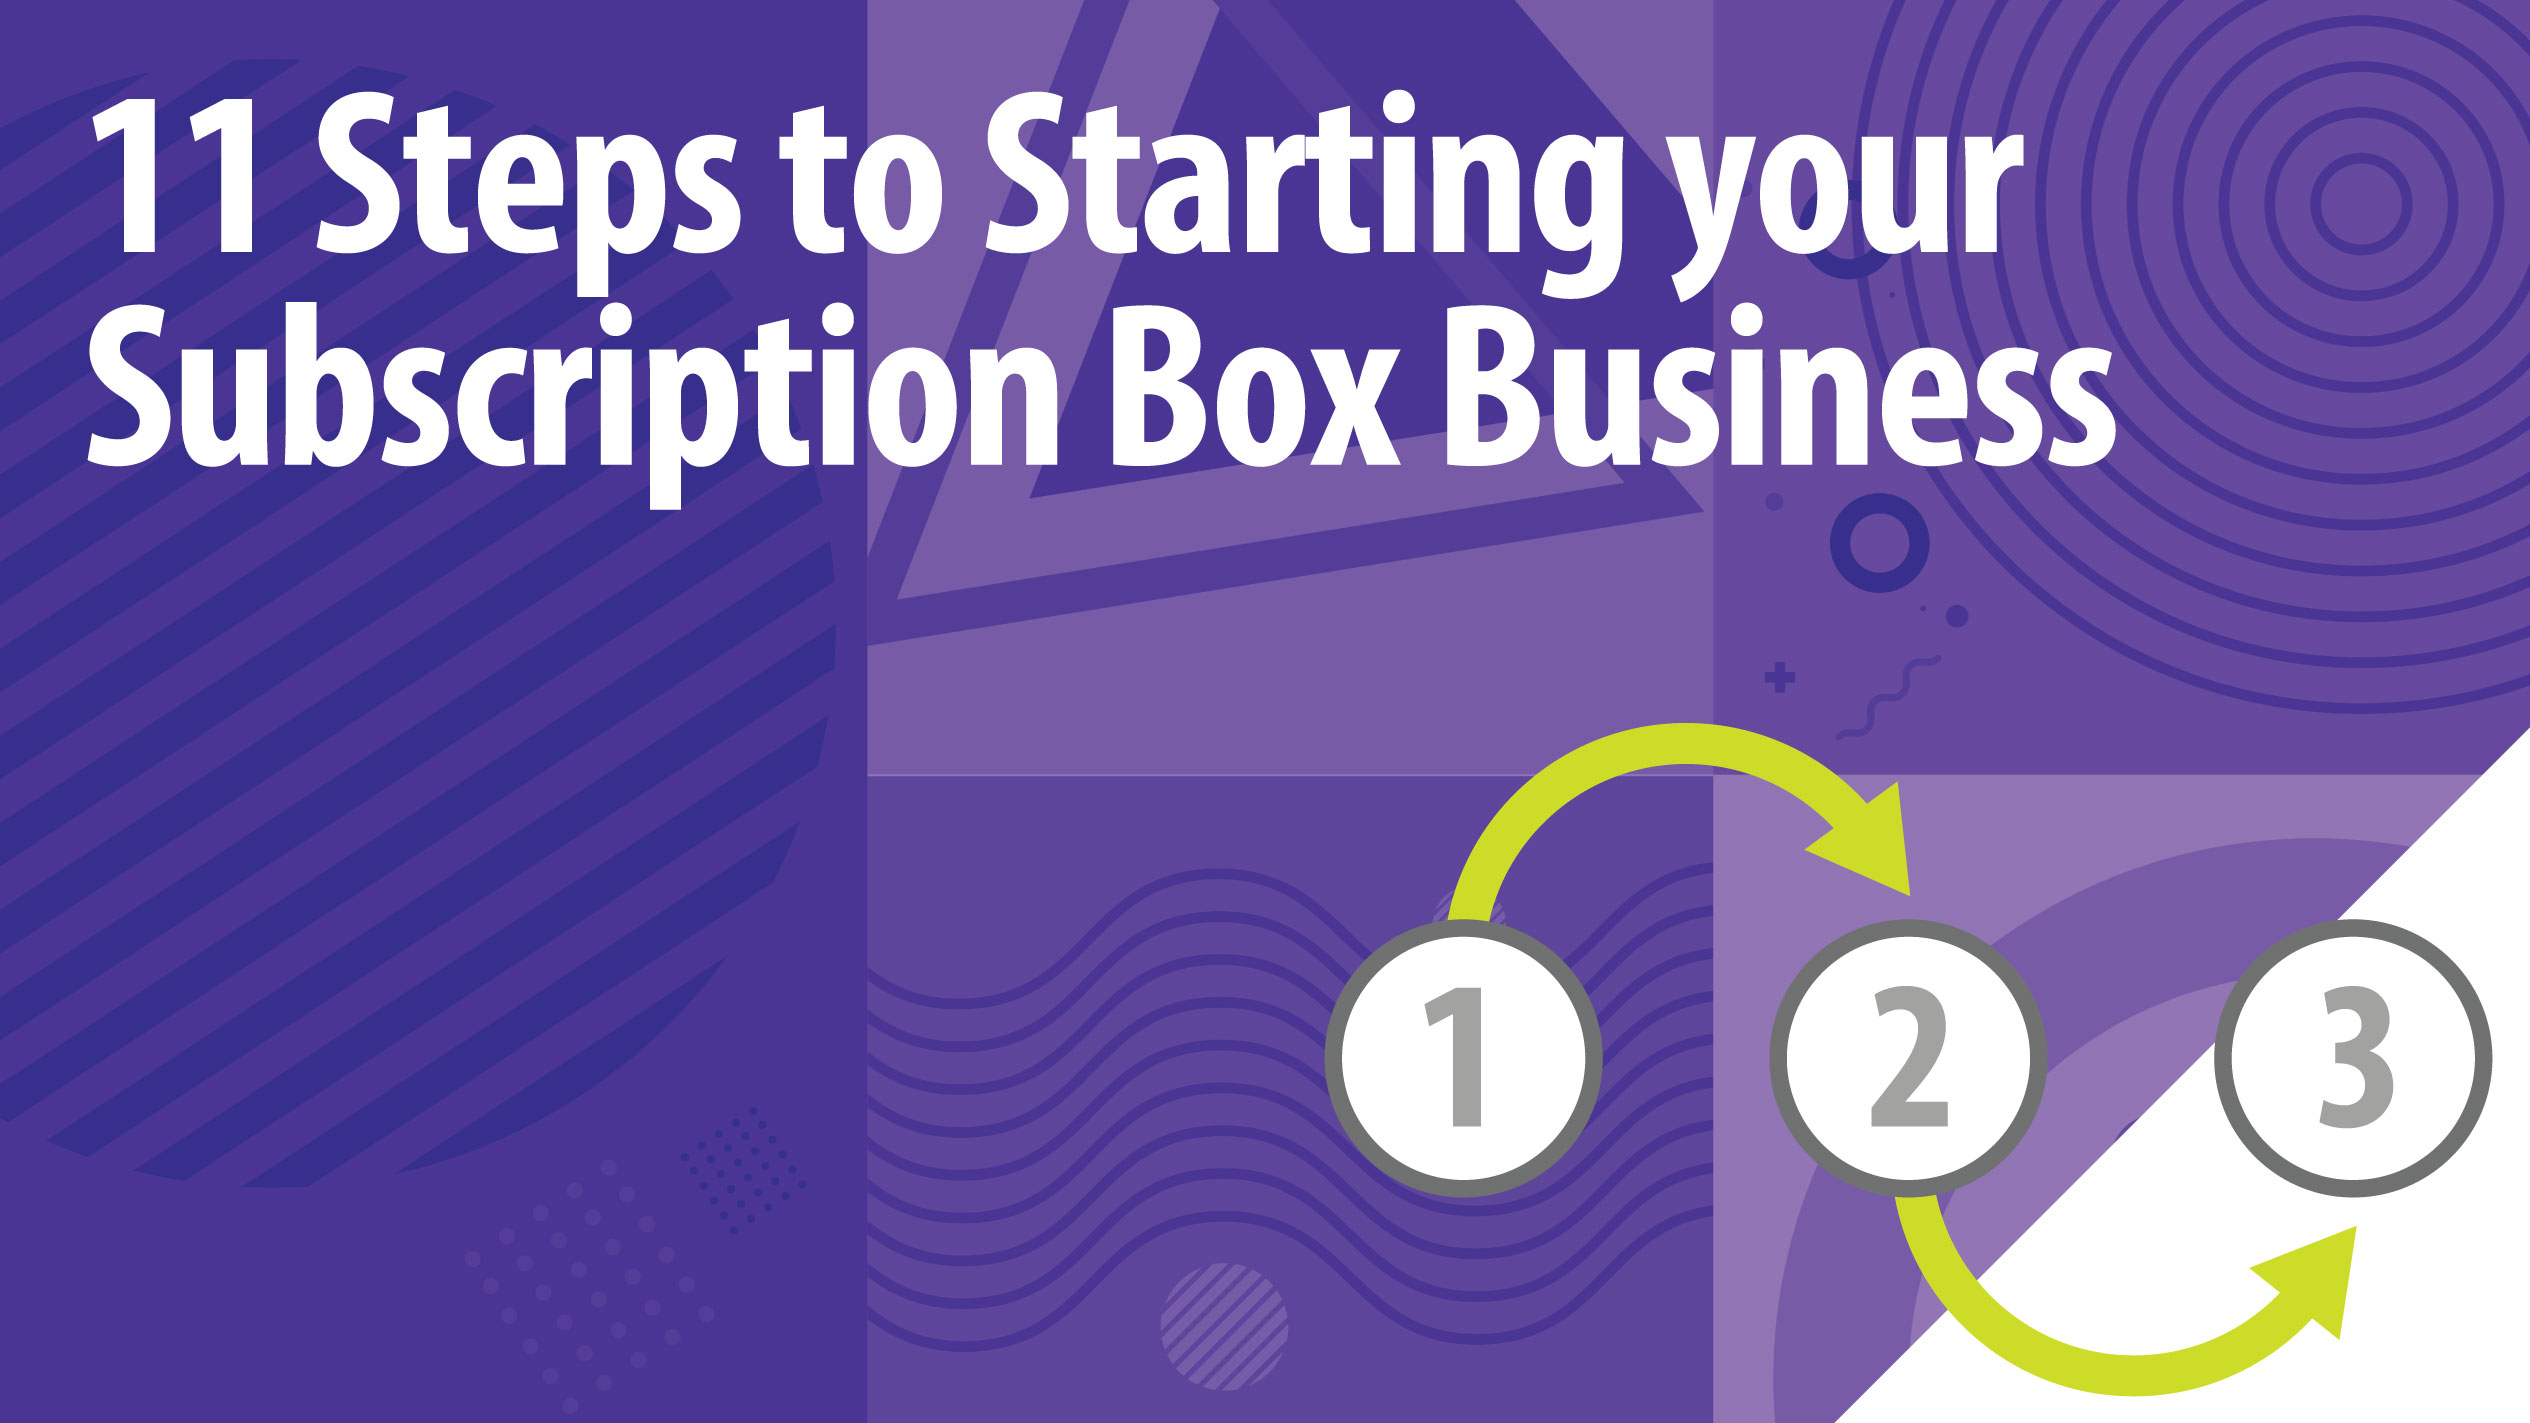 11 Steps to Starting your Subscription Box Business